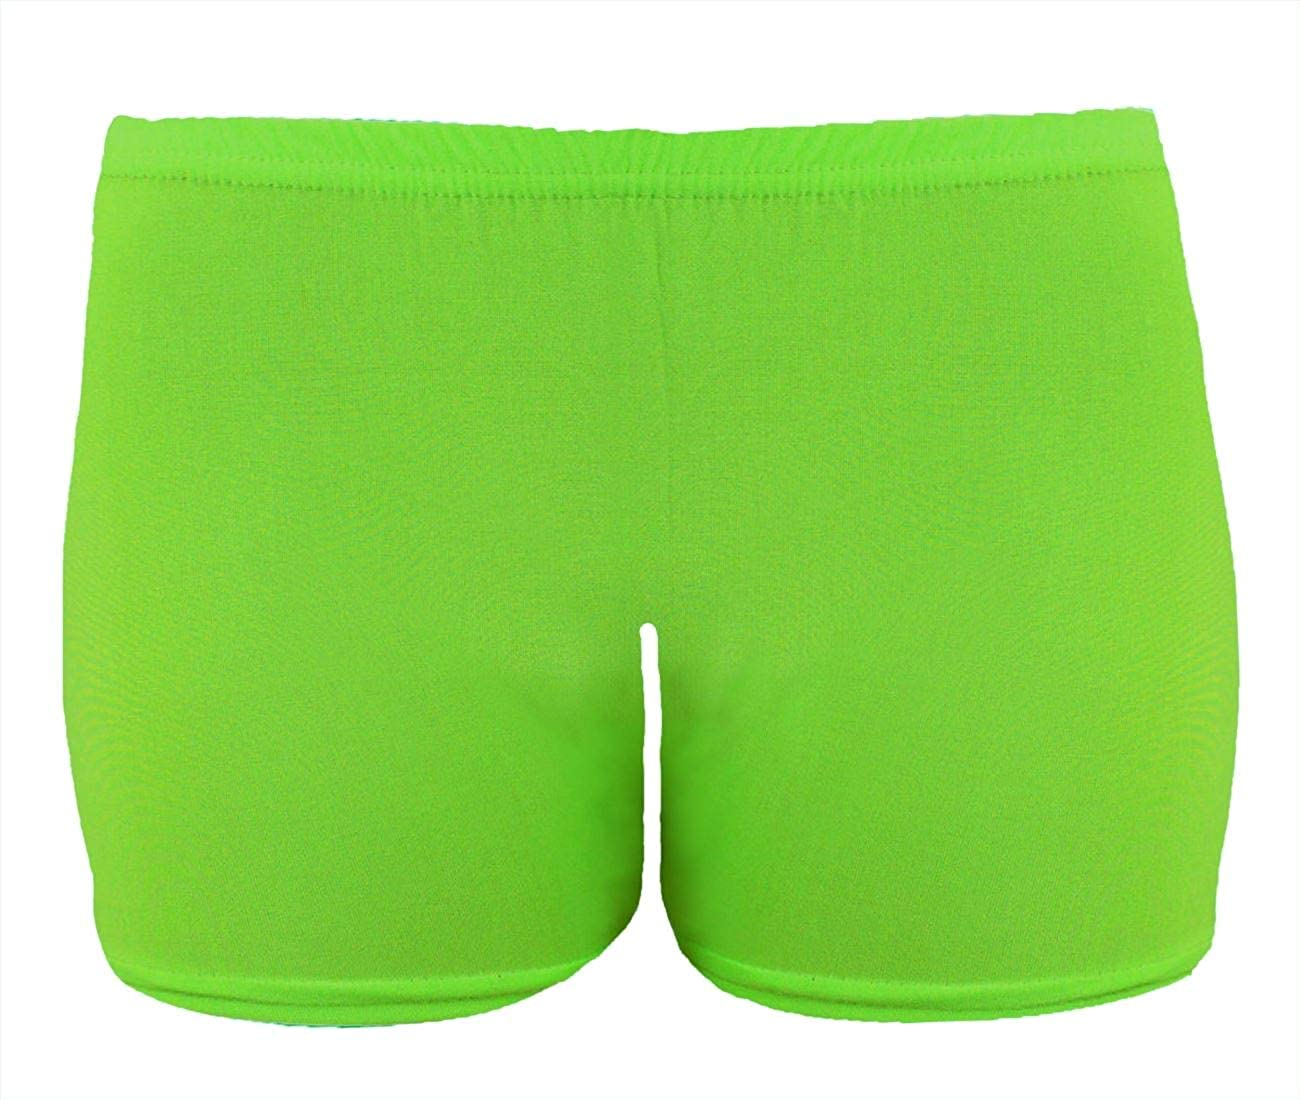 NEW LADIES KIDS VEST HOT PANT SHORTS LEGGING GIRL LYCRA NEON TOP SOFT DANCE WEAR